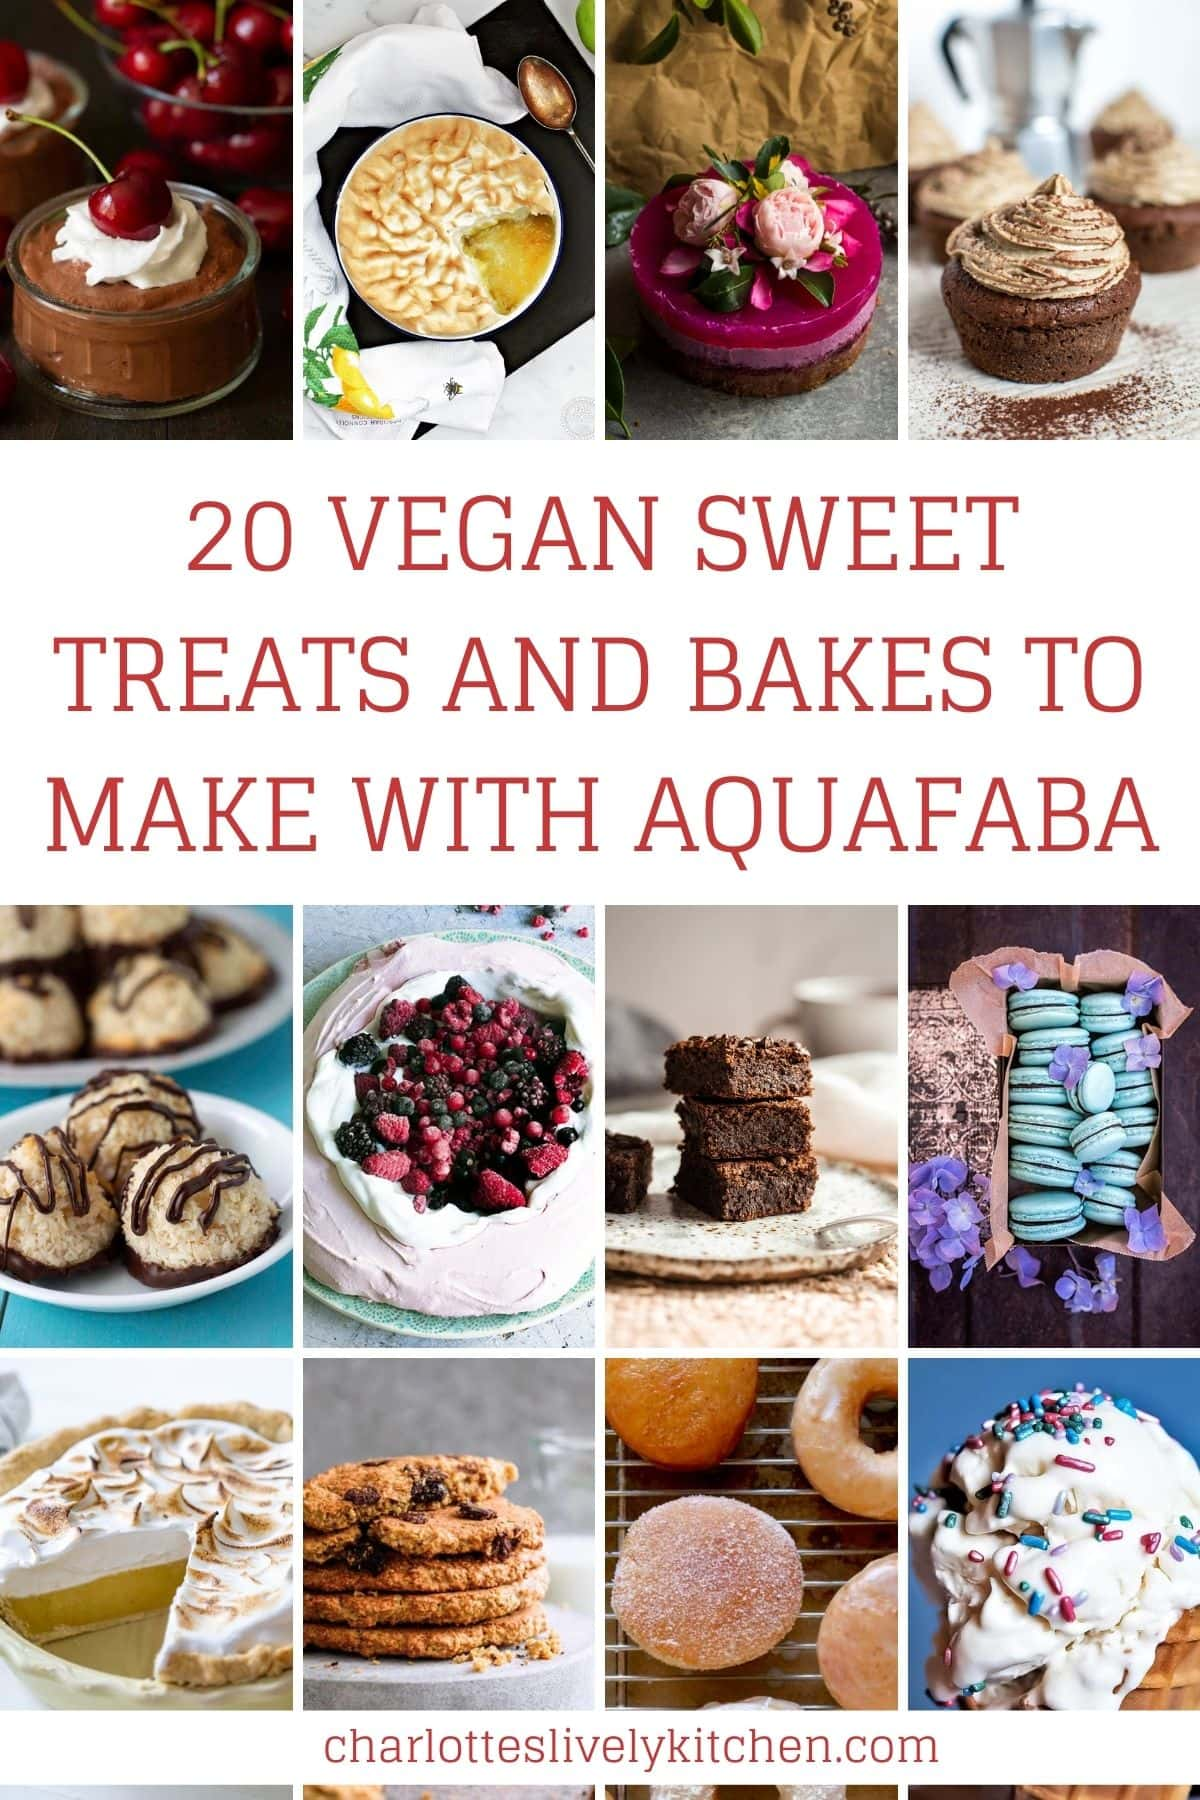 A collage of 12 different recipes made with aquafaba.